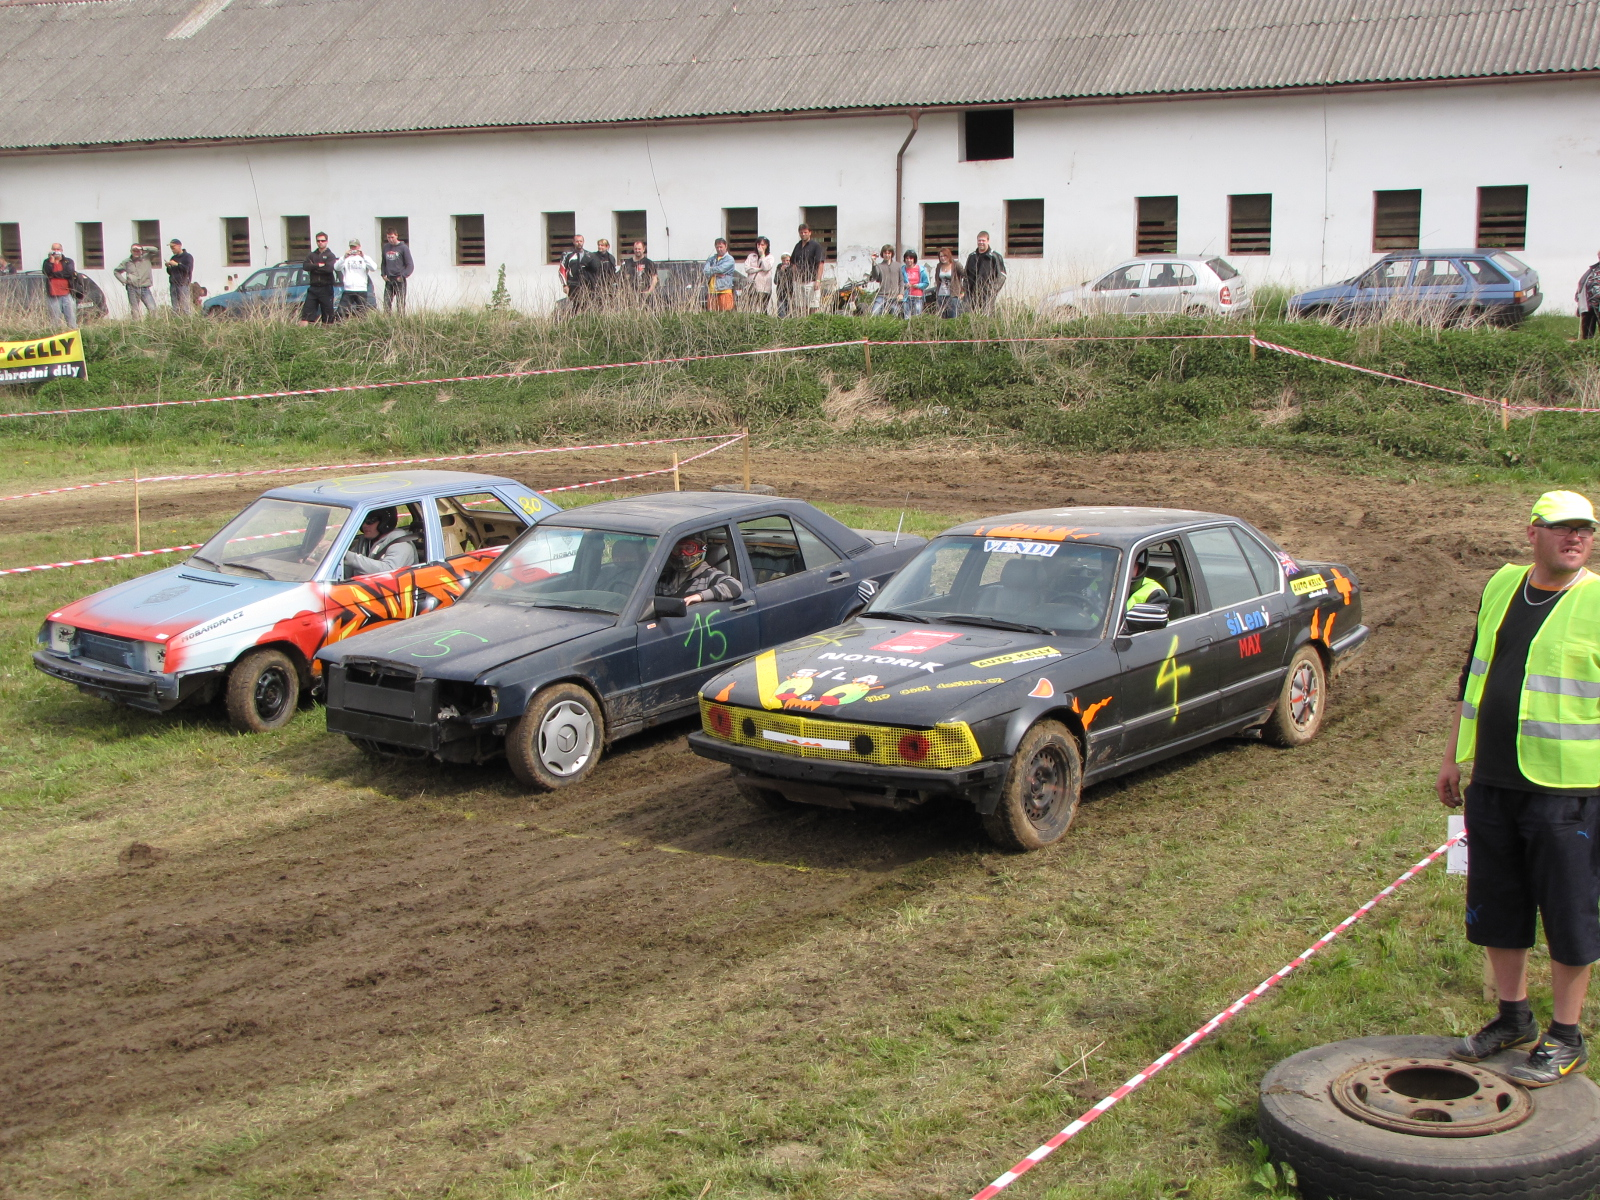 Demolition derby 013